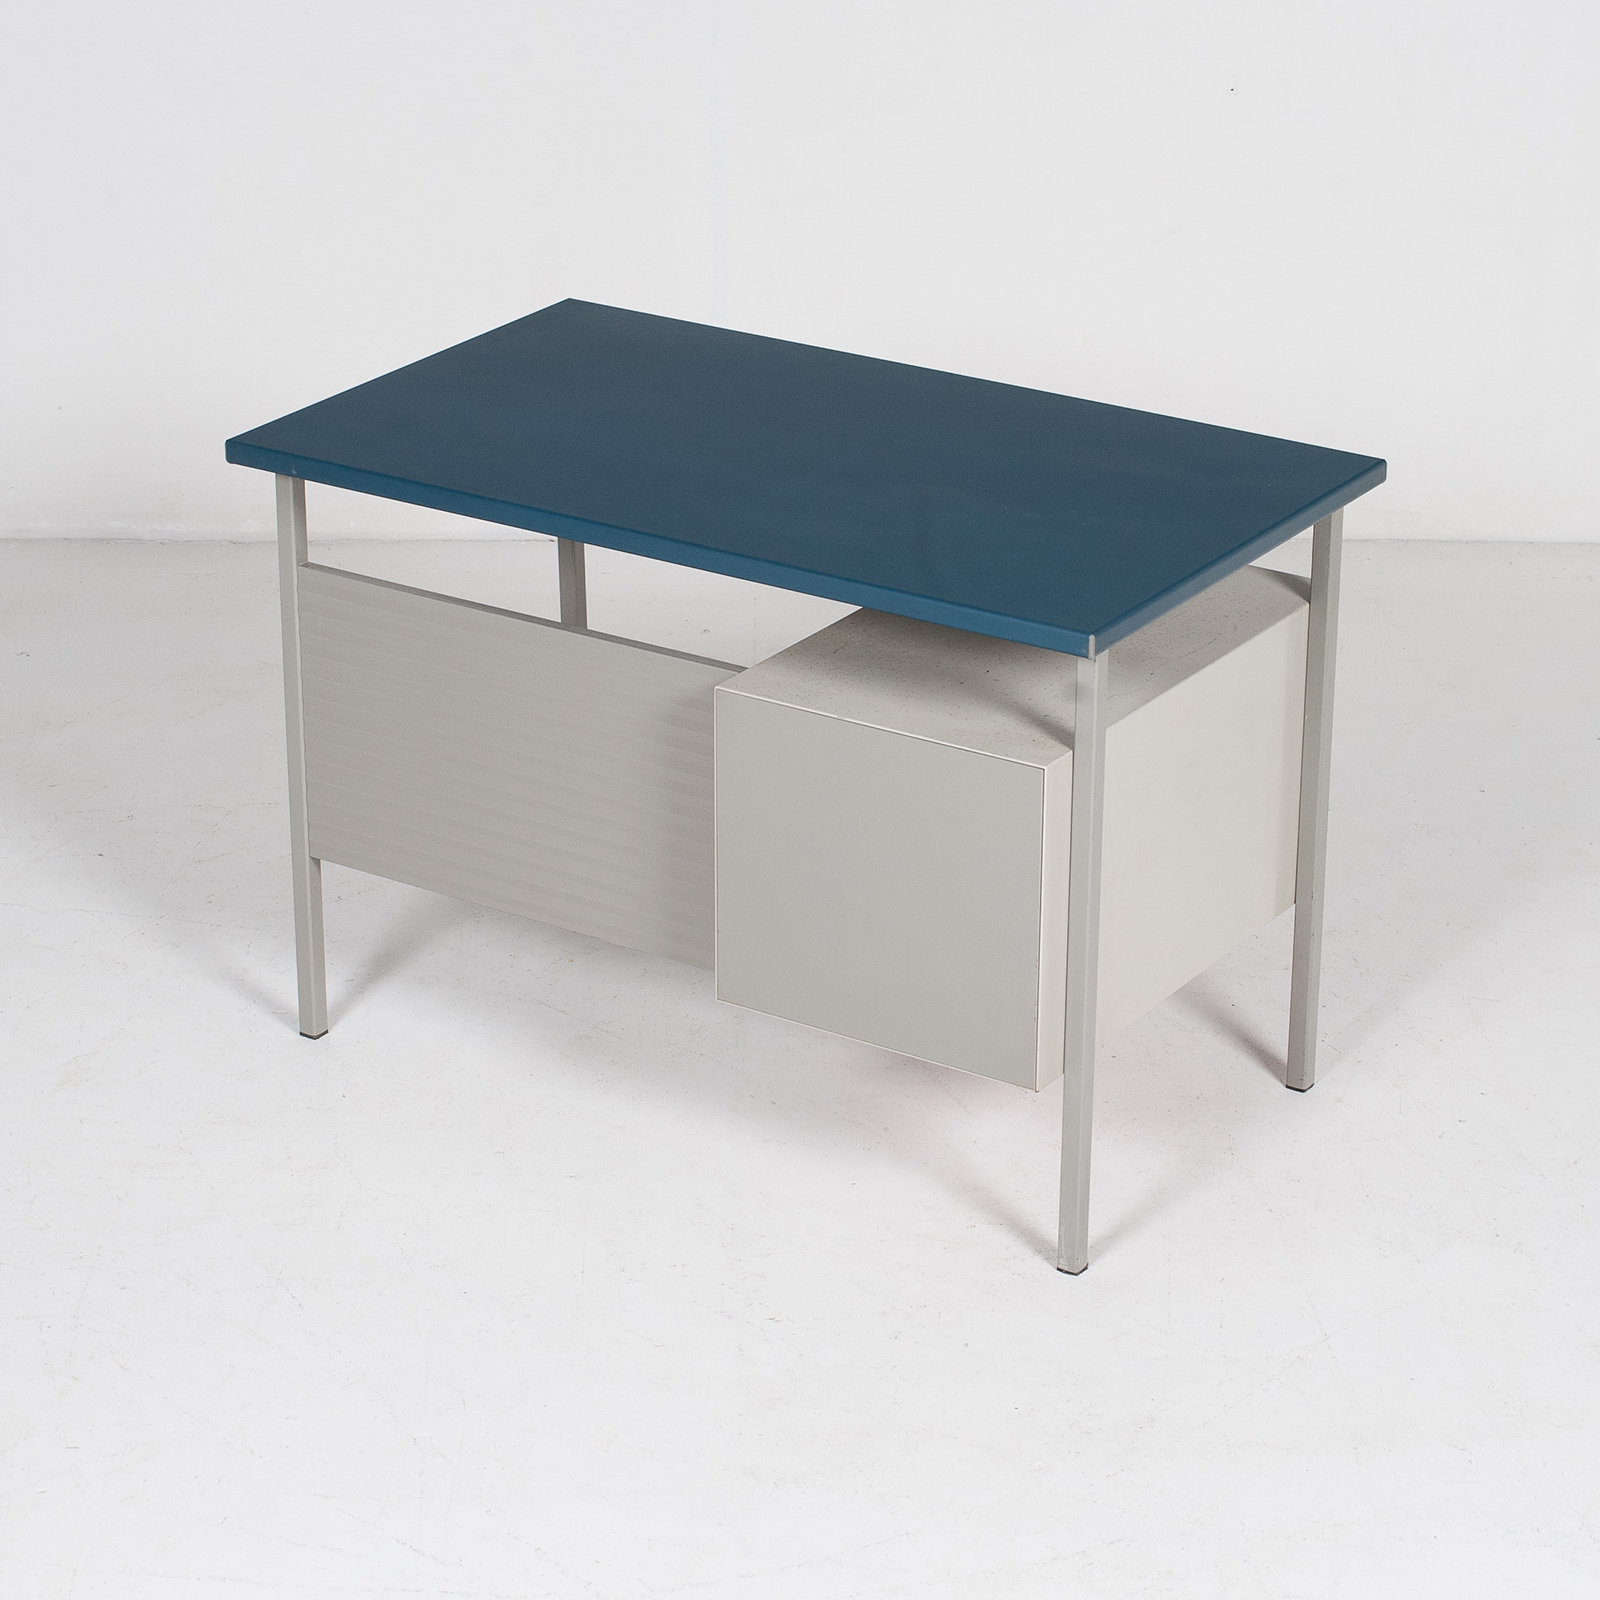 3803 Industrial Desk By Andre Cordemeyer For Gispen With Blue Vinyl Top And Red Enamelled Drawers, 1950s, The Netherlands 51